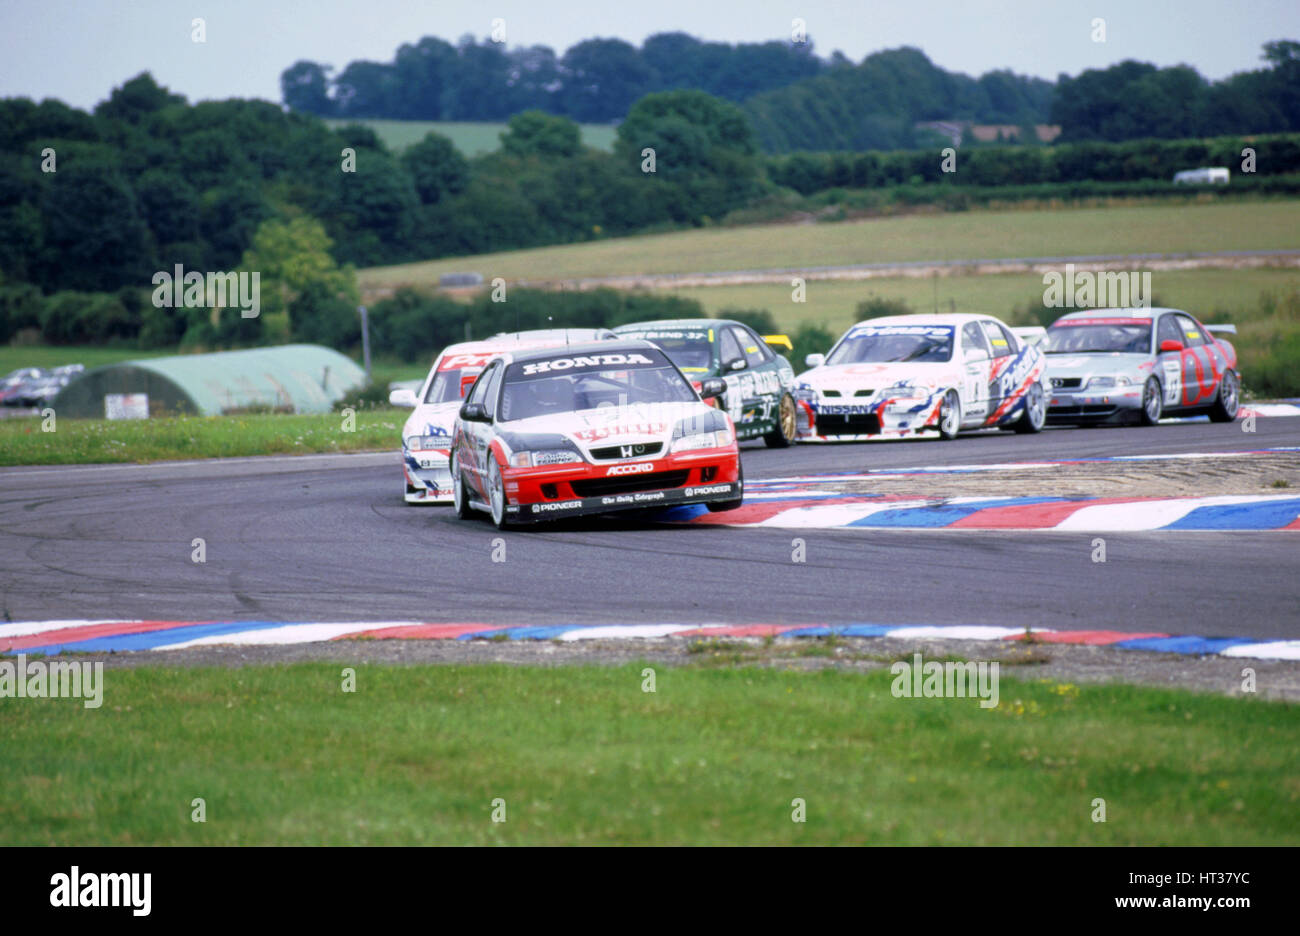 1998 Touring Cars, Thruxton.Honda Accord.J.Thompson leads. Artist: Unknown. - Stock Image